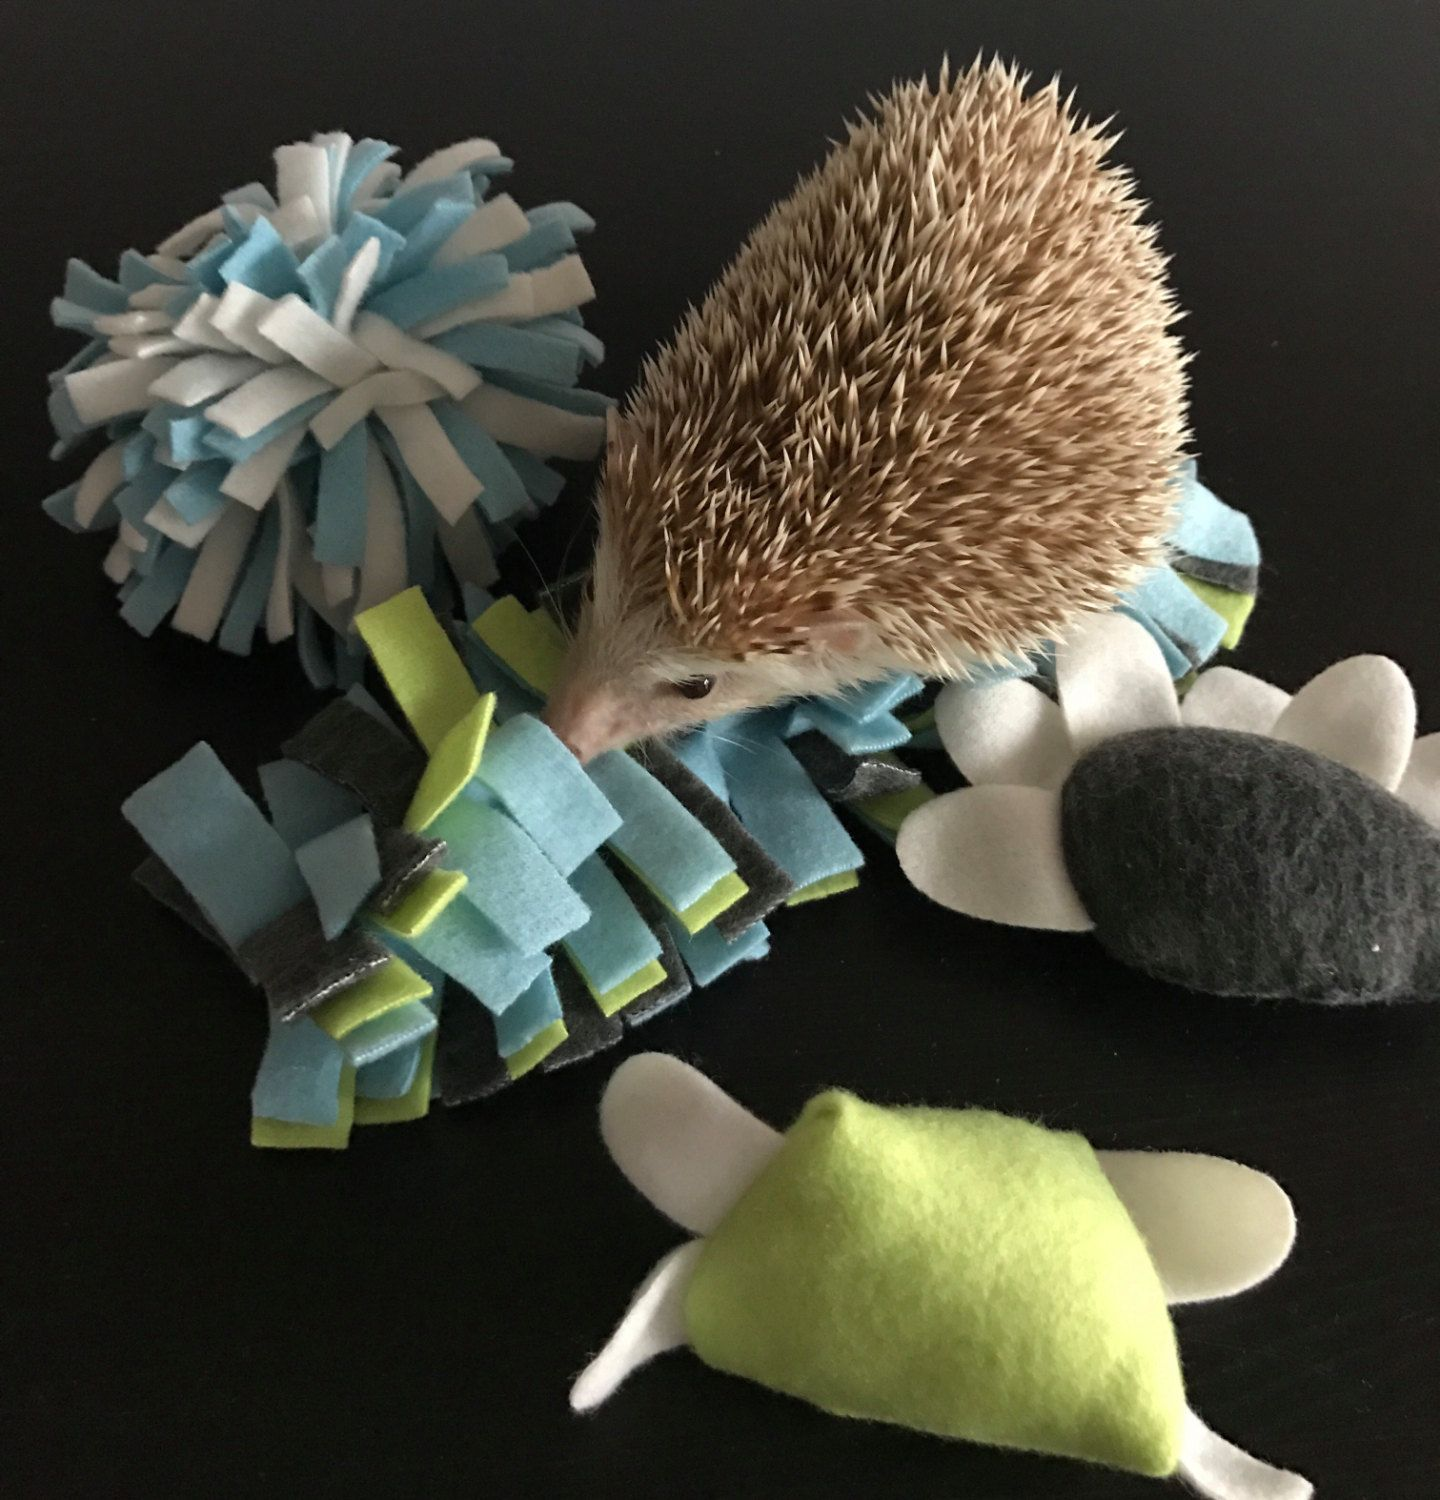 Toy Bundle 1 Toys For Hedgehogs Small Pet Toy Bell Toy Etsy Hedgehog Pet Soft Toy Animals Small Pets [ 1500 x 1440 Pixel ]